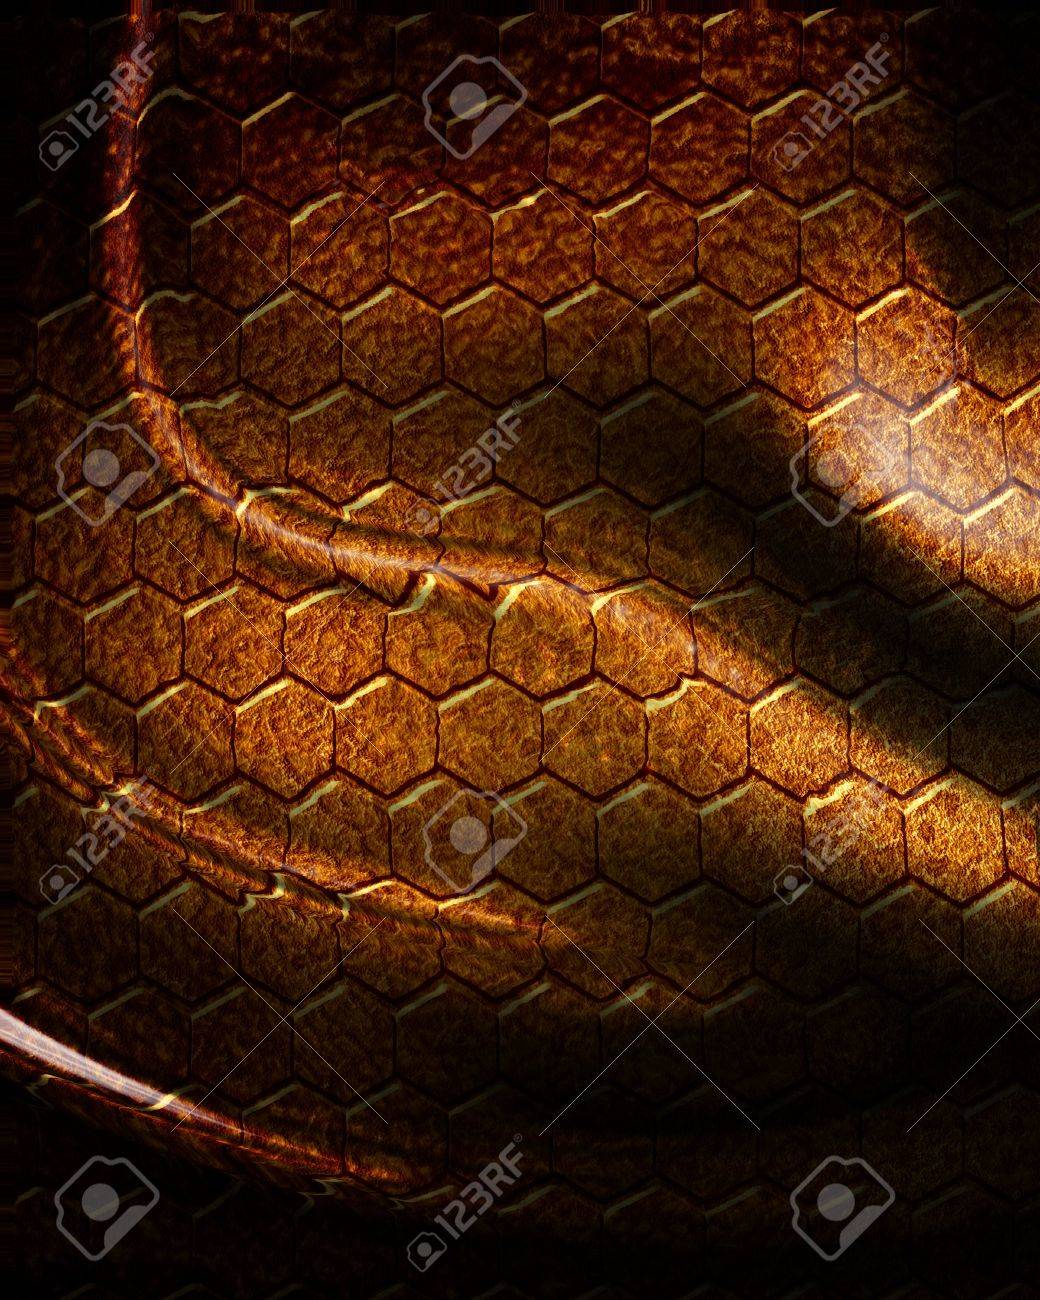 dinosaur skin texture with some spots on it Stock Photo - 3207349